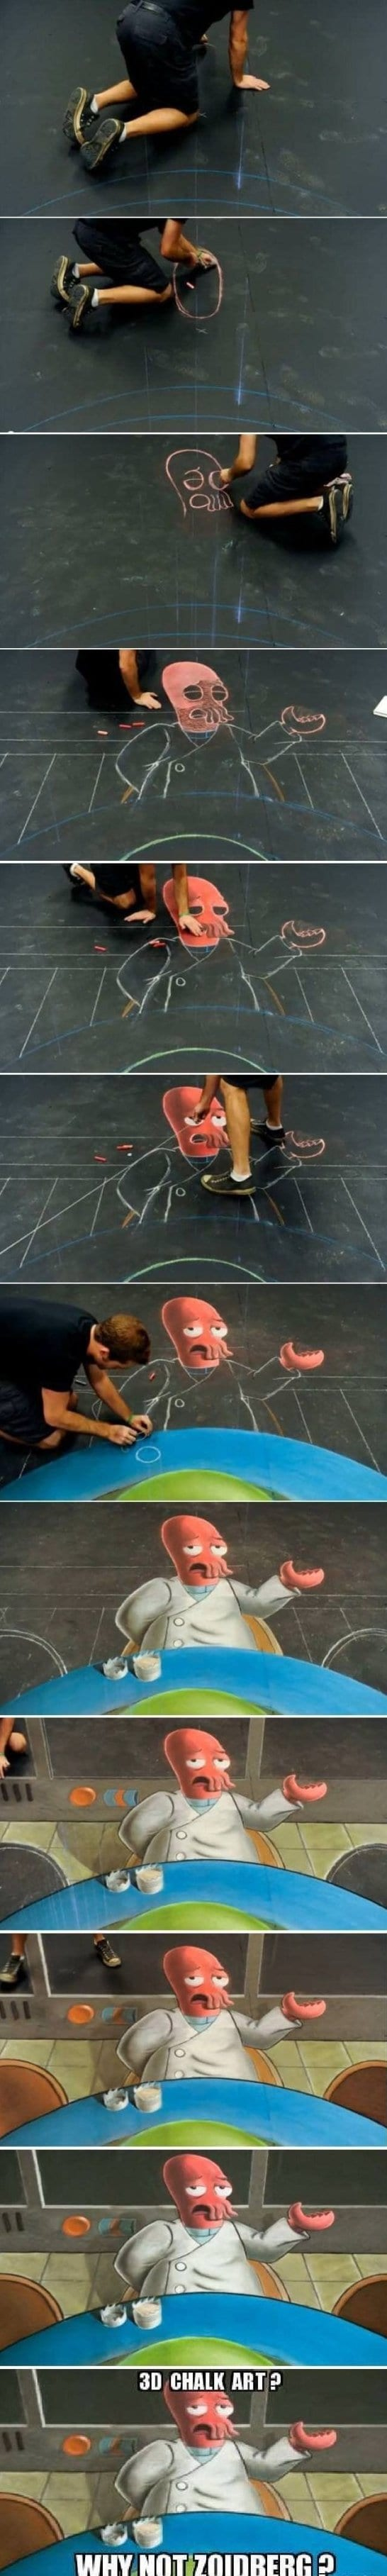 funny-pictures-meme-3d-chalk-art